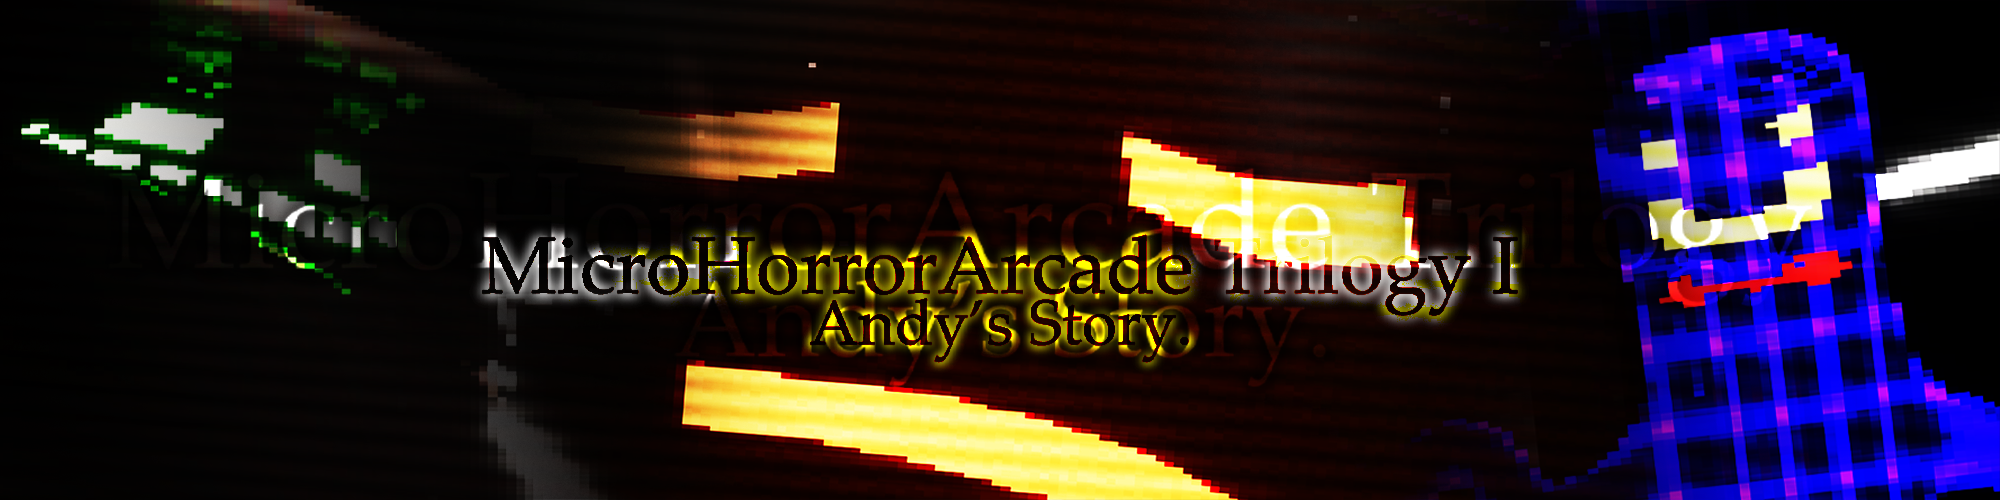 MicroHorrorArcade Trilogy I - Andy's Story